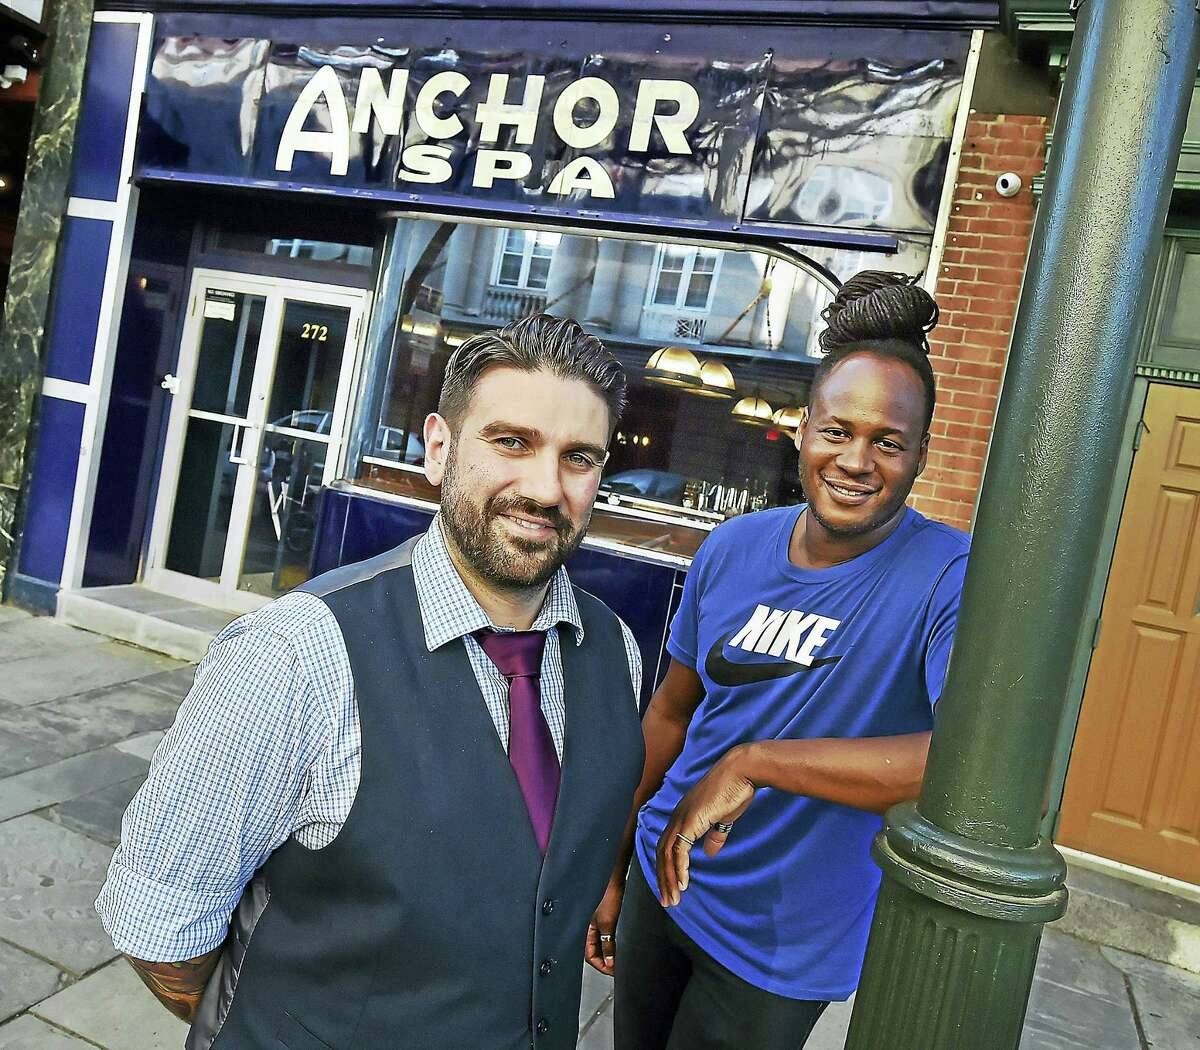 Karl Franz Williams of New York City, at right, owner of Anchor Spa at 272 College St., with his manager and partner, Dimitrios Zahariadis of Waterbury, have crafted a variety of mixed drinks inspired from ports around the globe and small plates with a focus on seafood and local game.